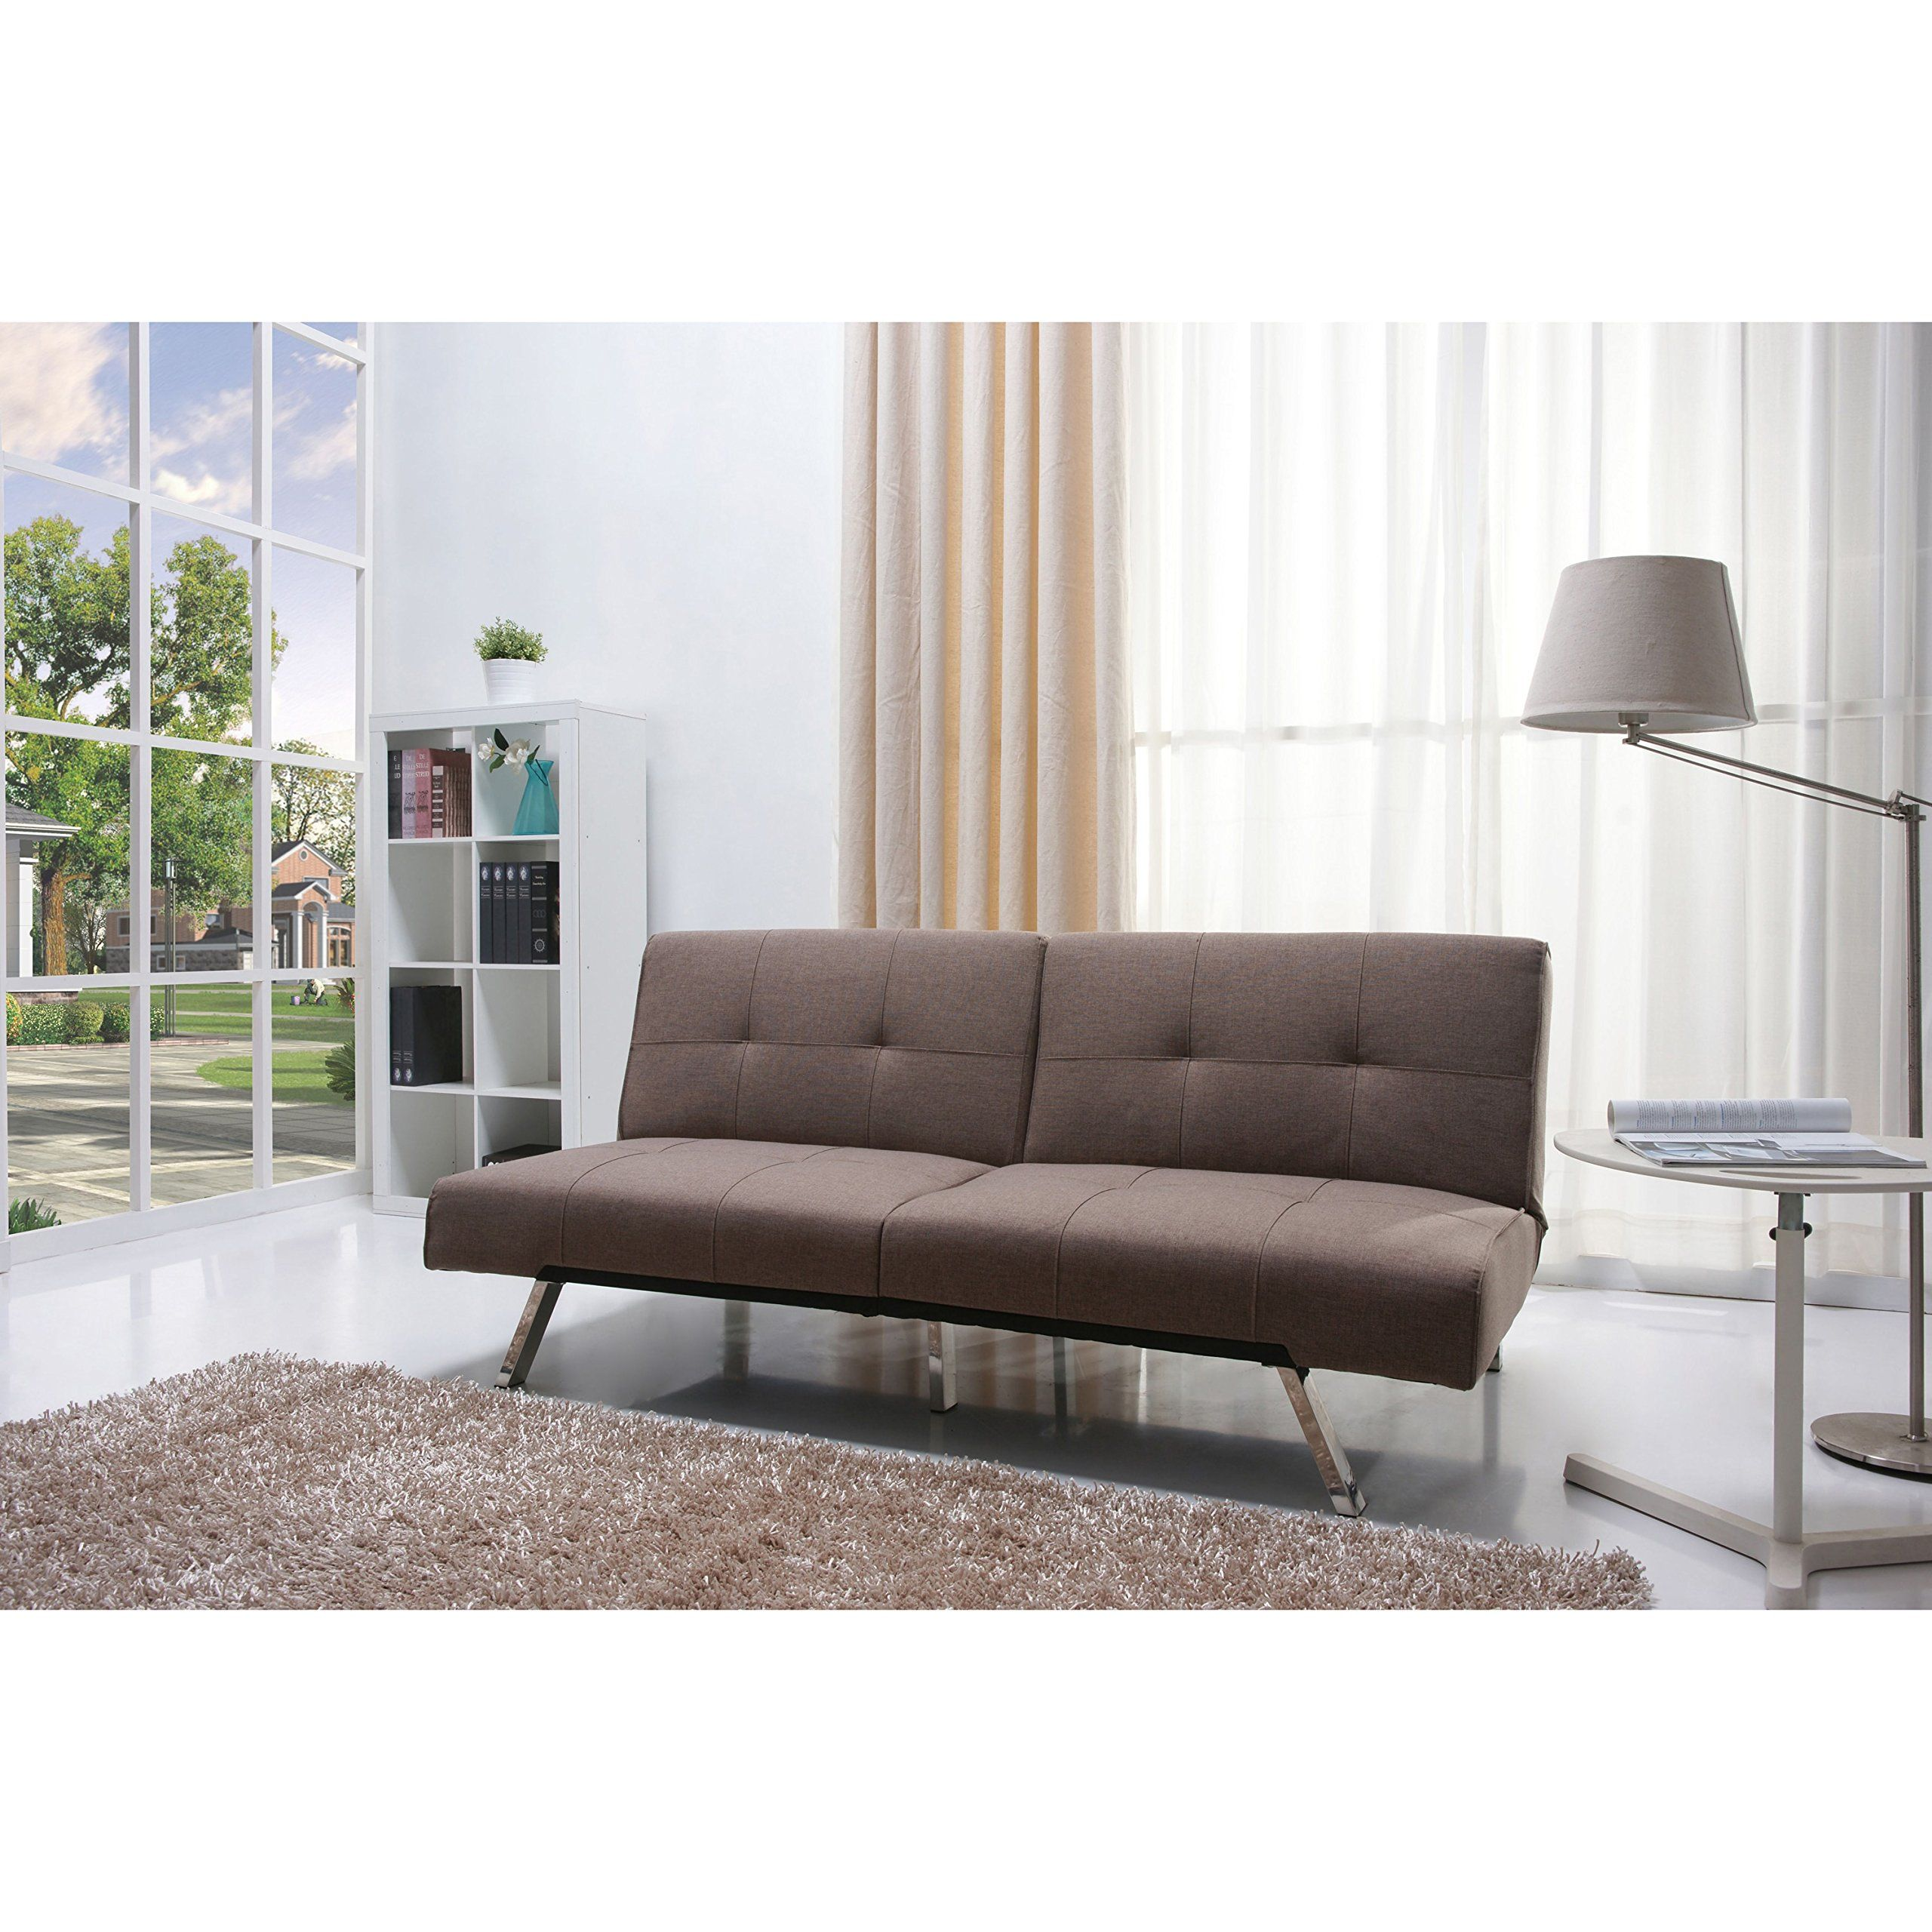 Contemporary Gray Fabric Convertable Futon Sofa Bed